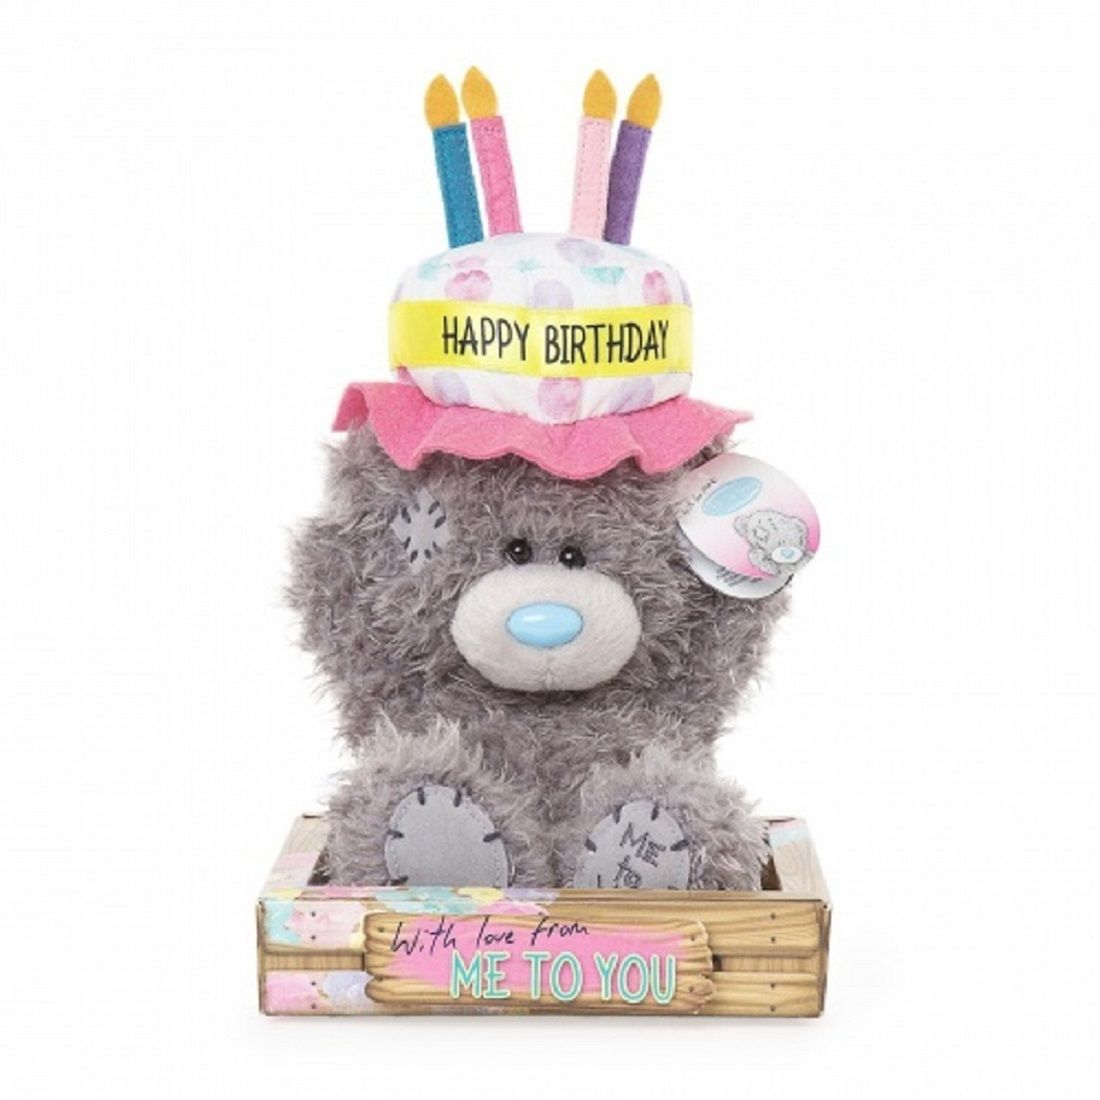 Stupendous Me To You 7 Collectors Plush Bear Happy Birthday Cake Hat Funny Birthday Cards Online Inifofree Goldxyz